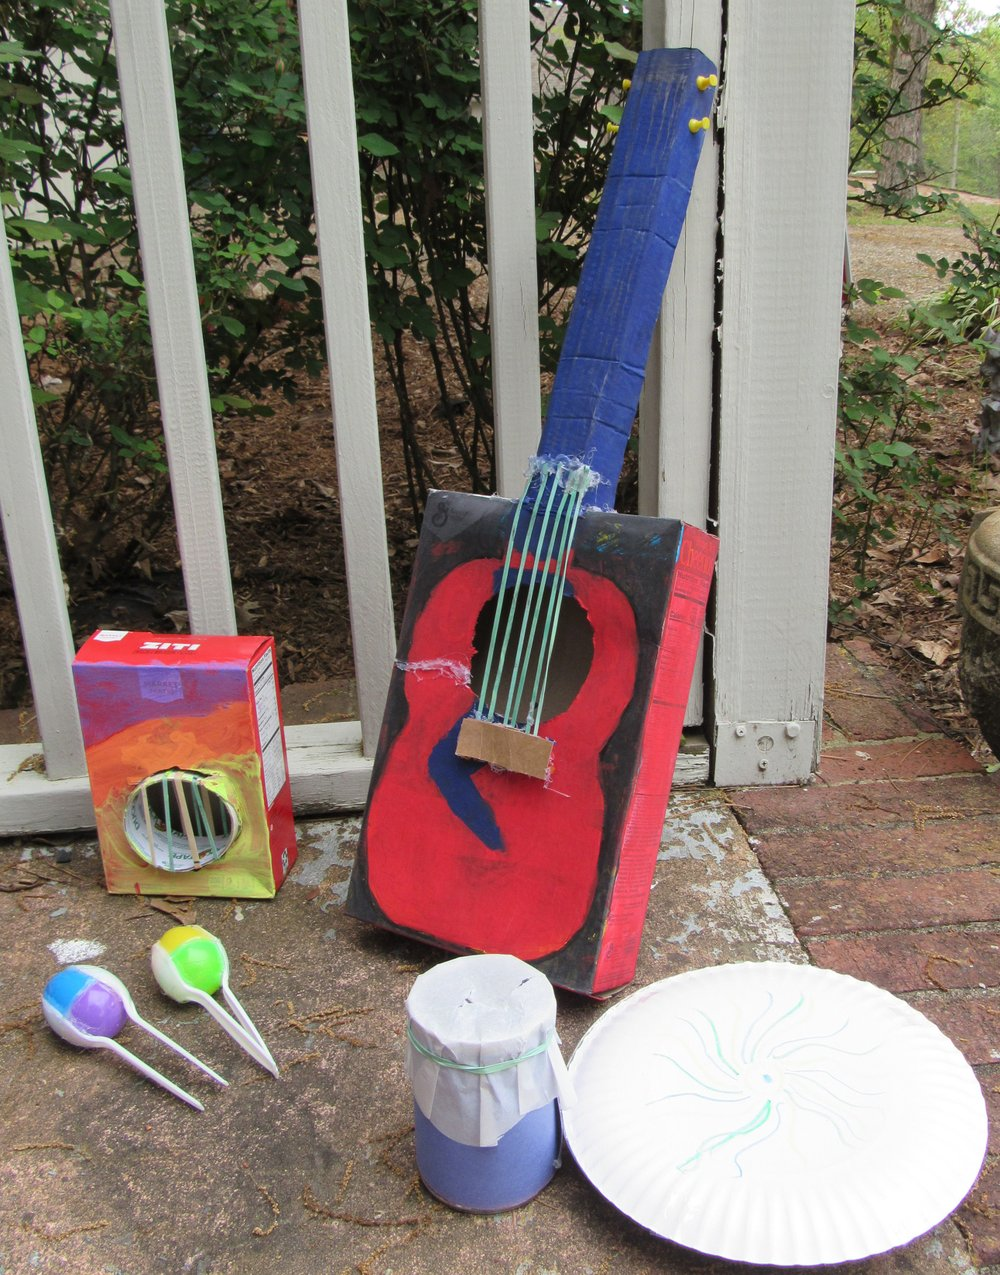 Musical instruments made from household items include (clockwise from far left) Easter egg maracas, pasta box banjo, cereal box guitar, pie pan tambourine and a drum made from a can. (Special to the Democrat-Gazette/Kimberly Dishongh)